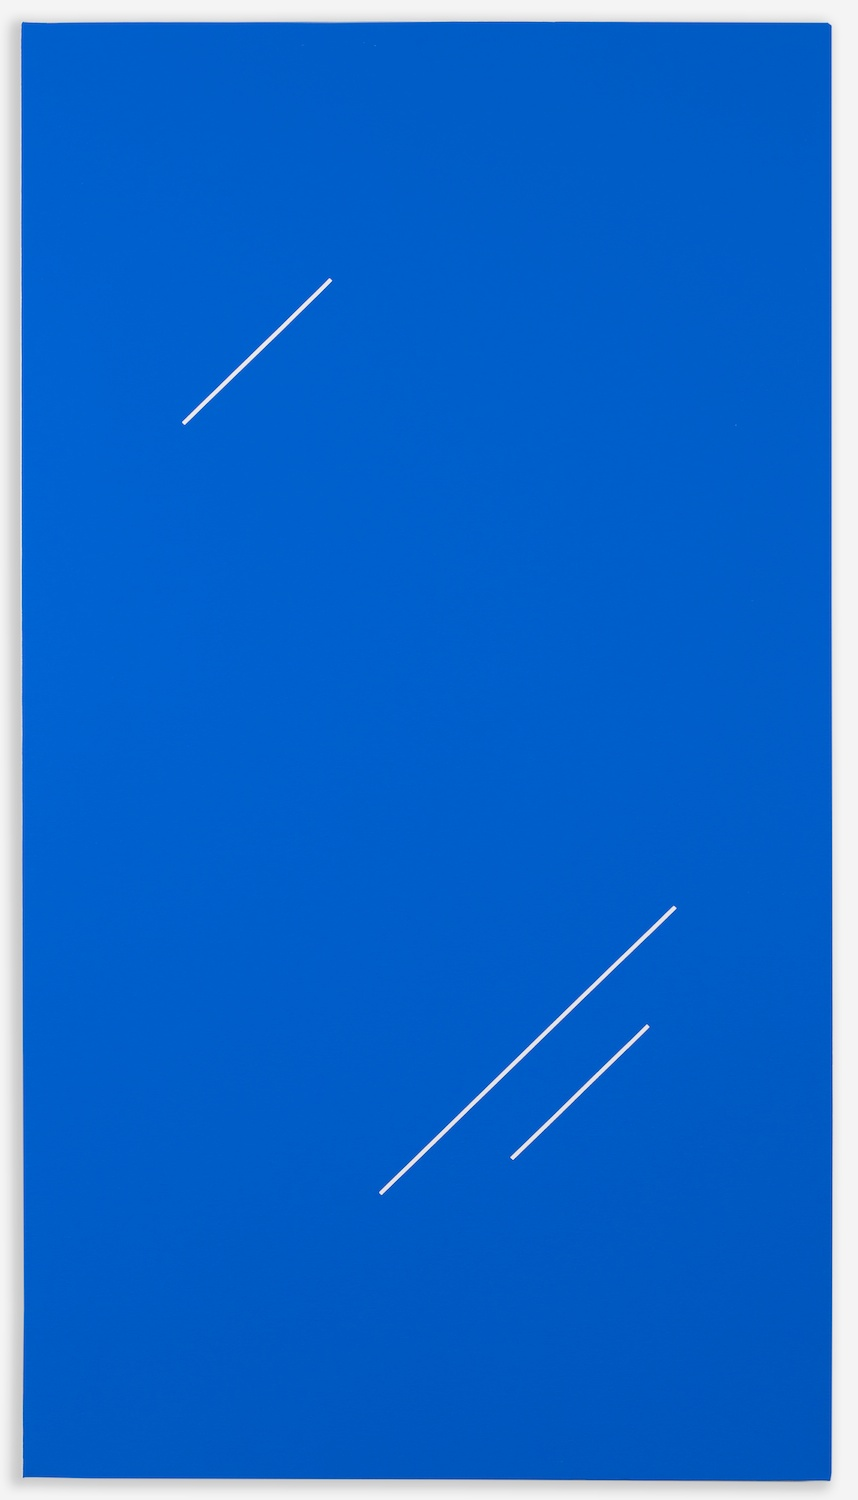 Paul Cowan  BCEAUSE THE SKY IS BULE   2013 Chroma-key blue paint on canvas  48h x 26w in  PC093